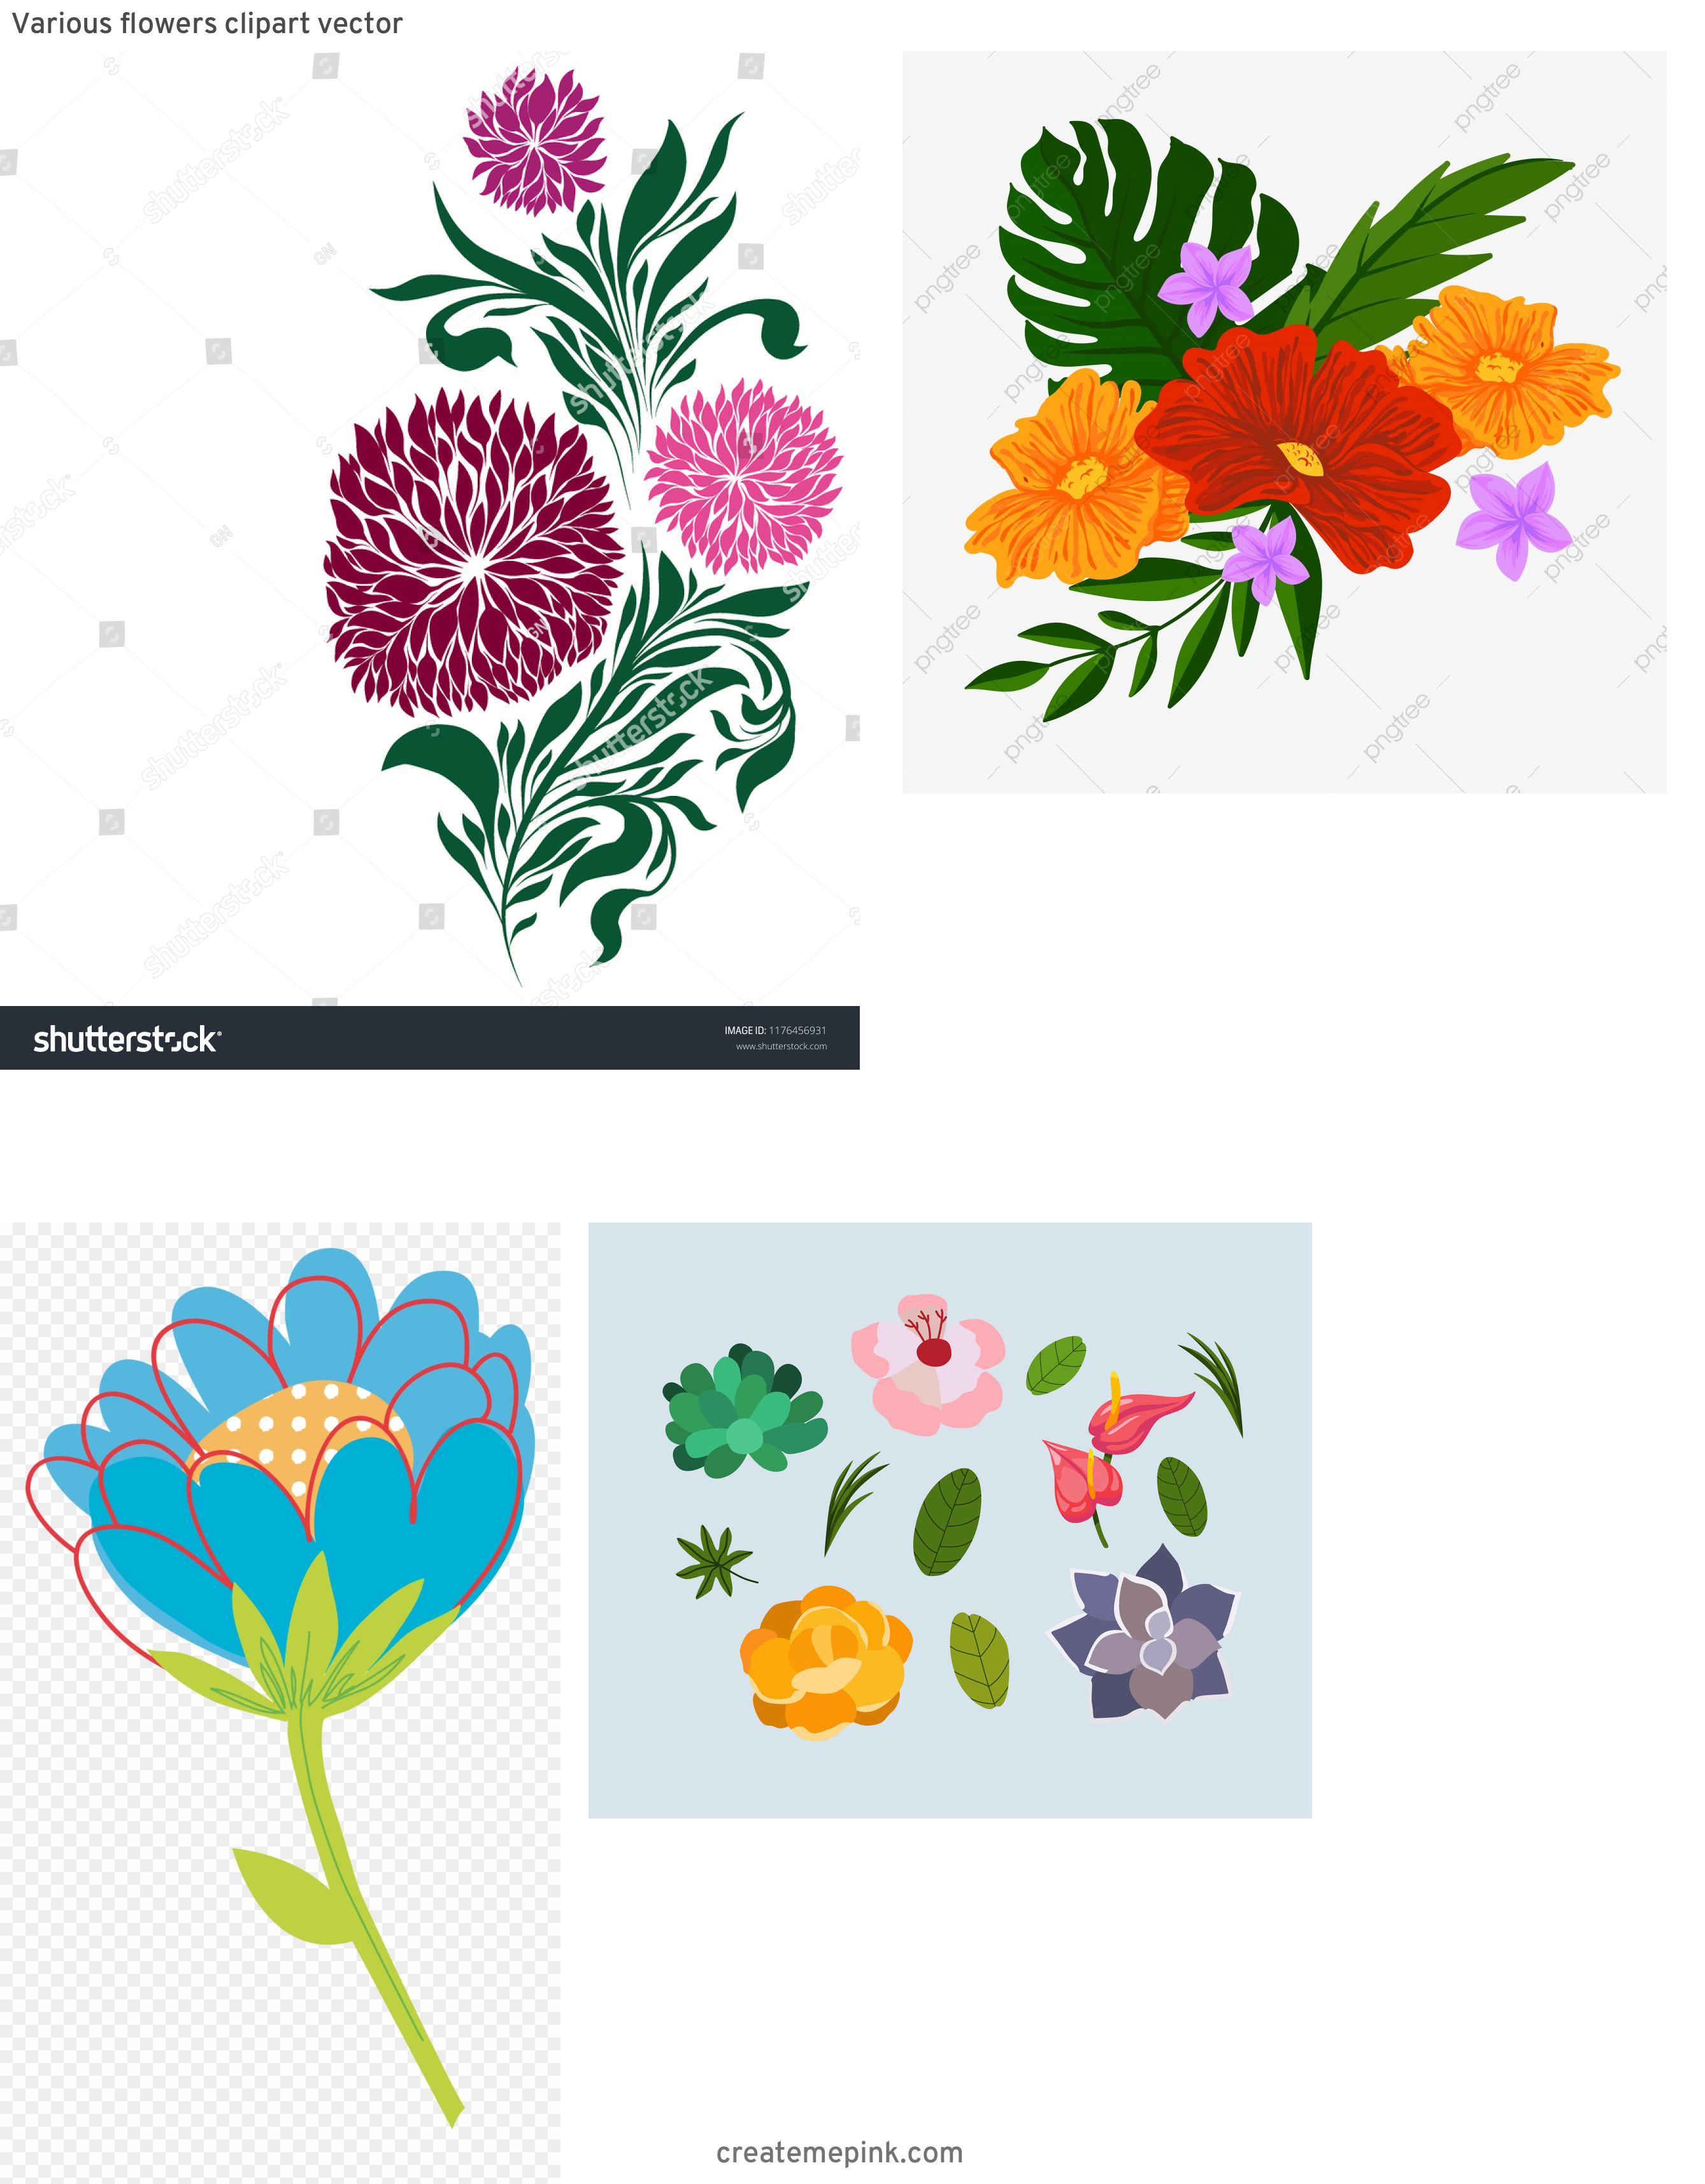 Vector Graphics Floral: Various Flowers Clipart Vector